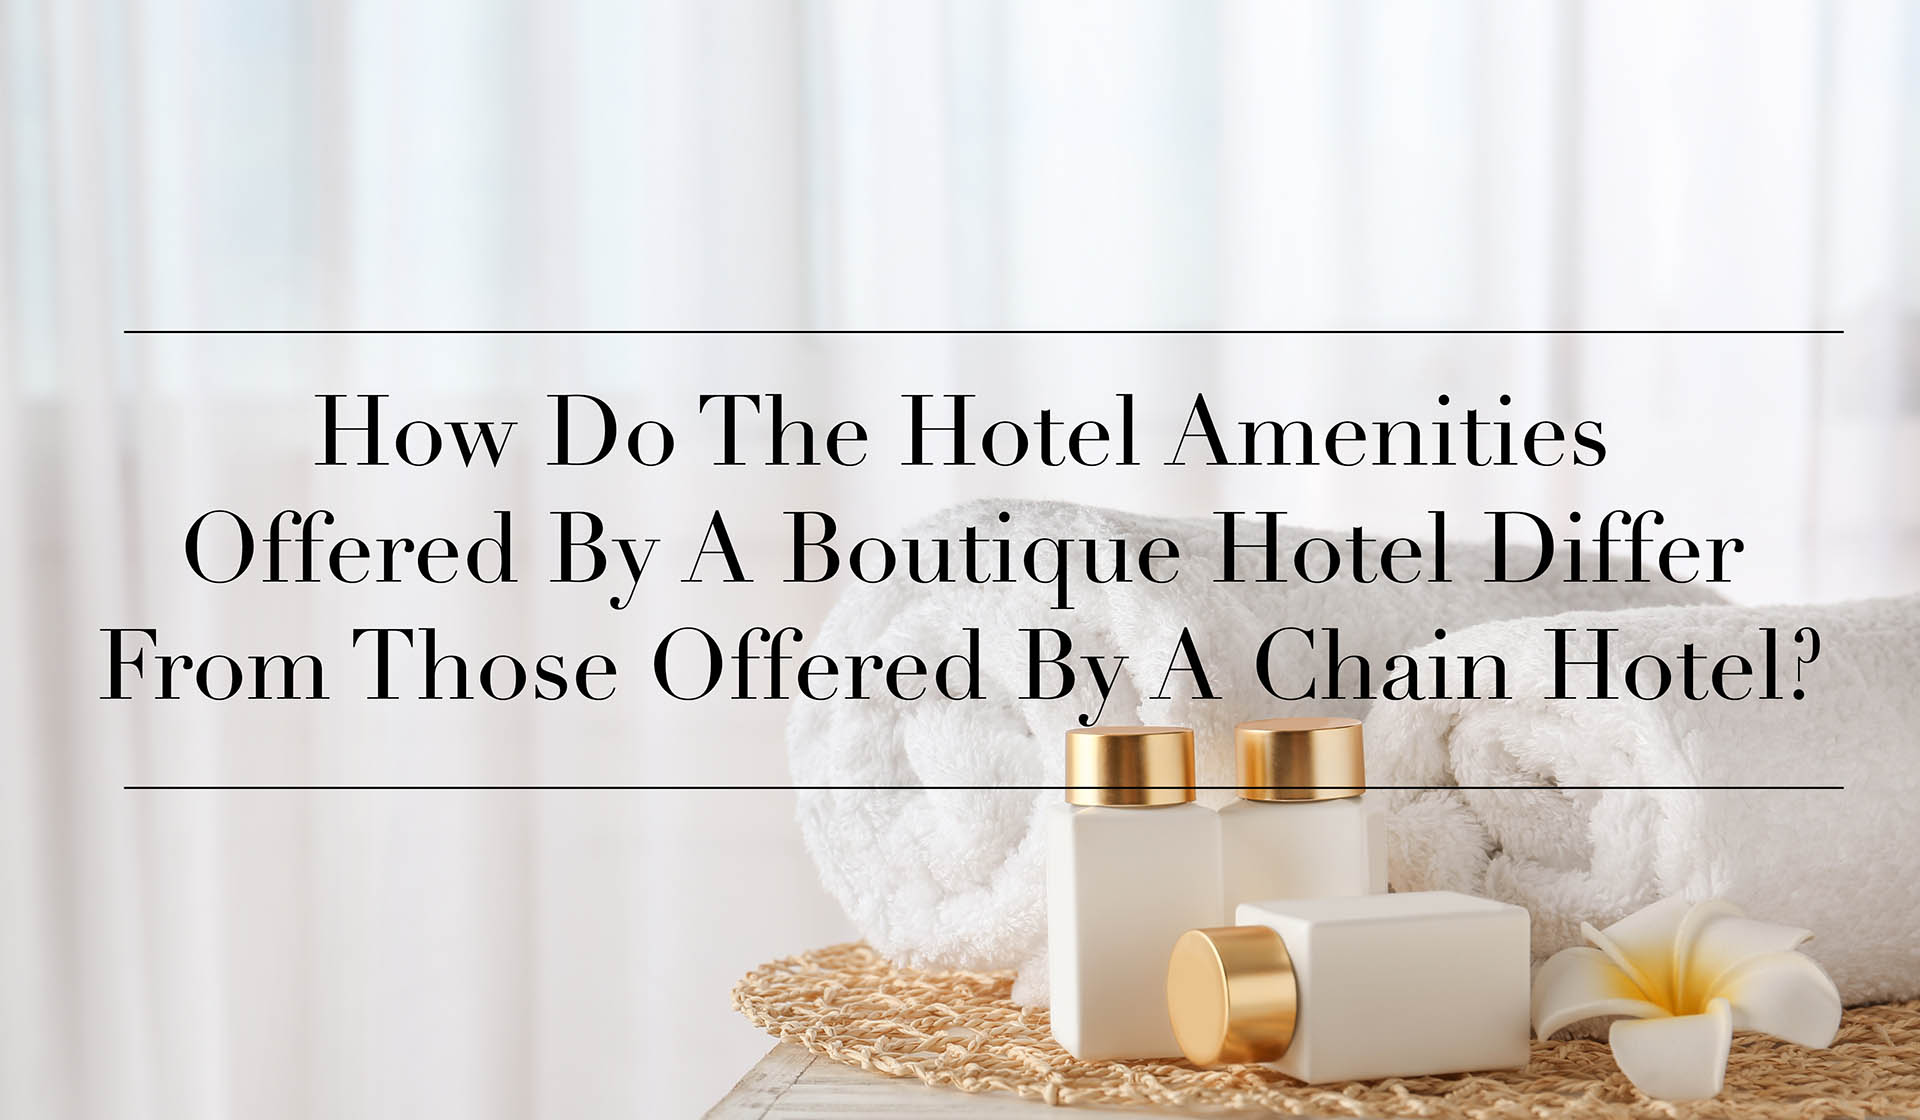 How Do The Hotel Amenities Offered By A Boutique Hotel Differ From Those Offered By A Chain Hotel?